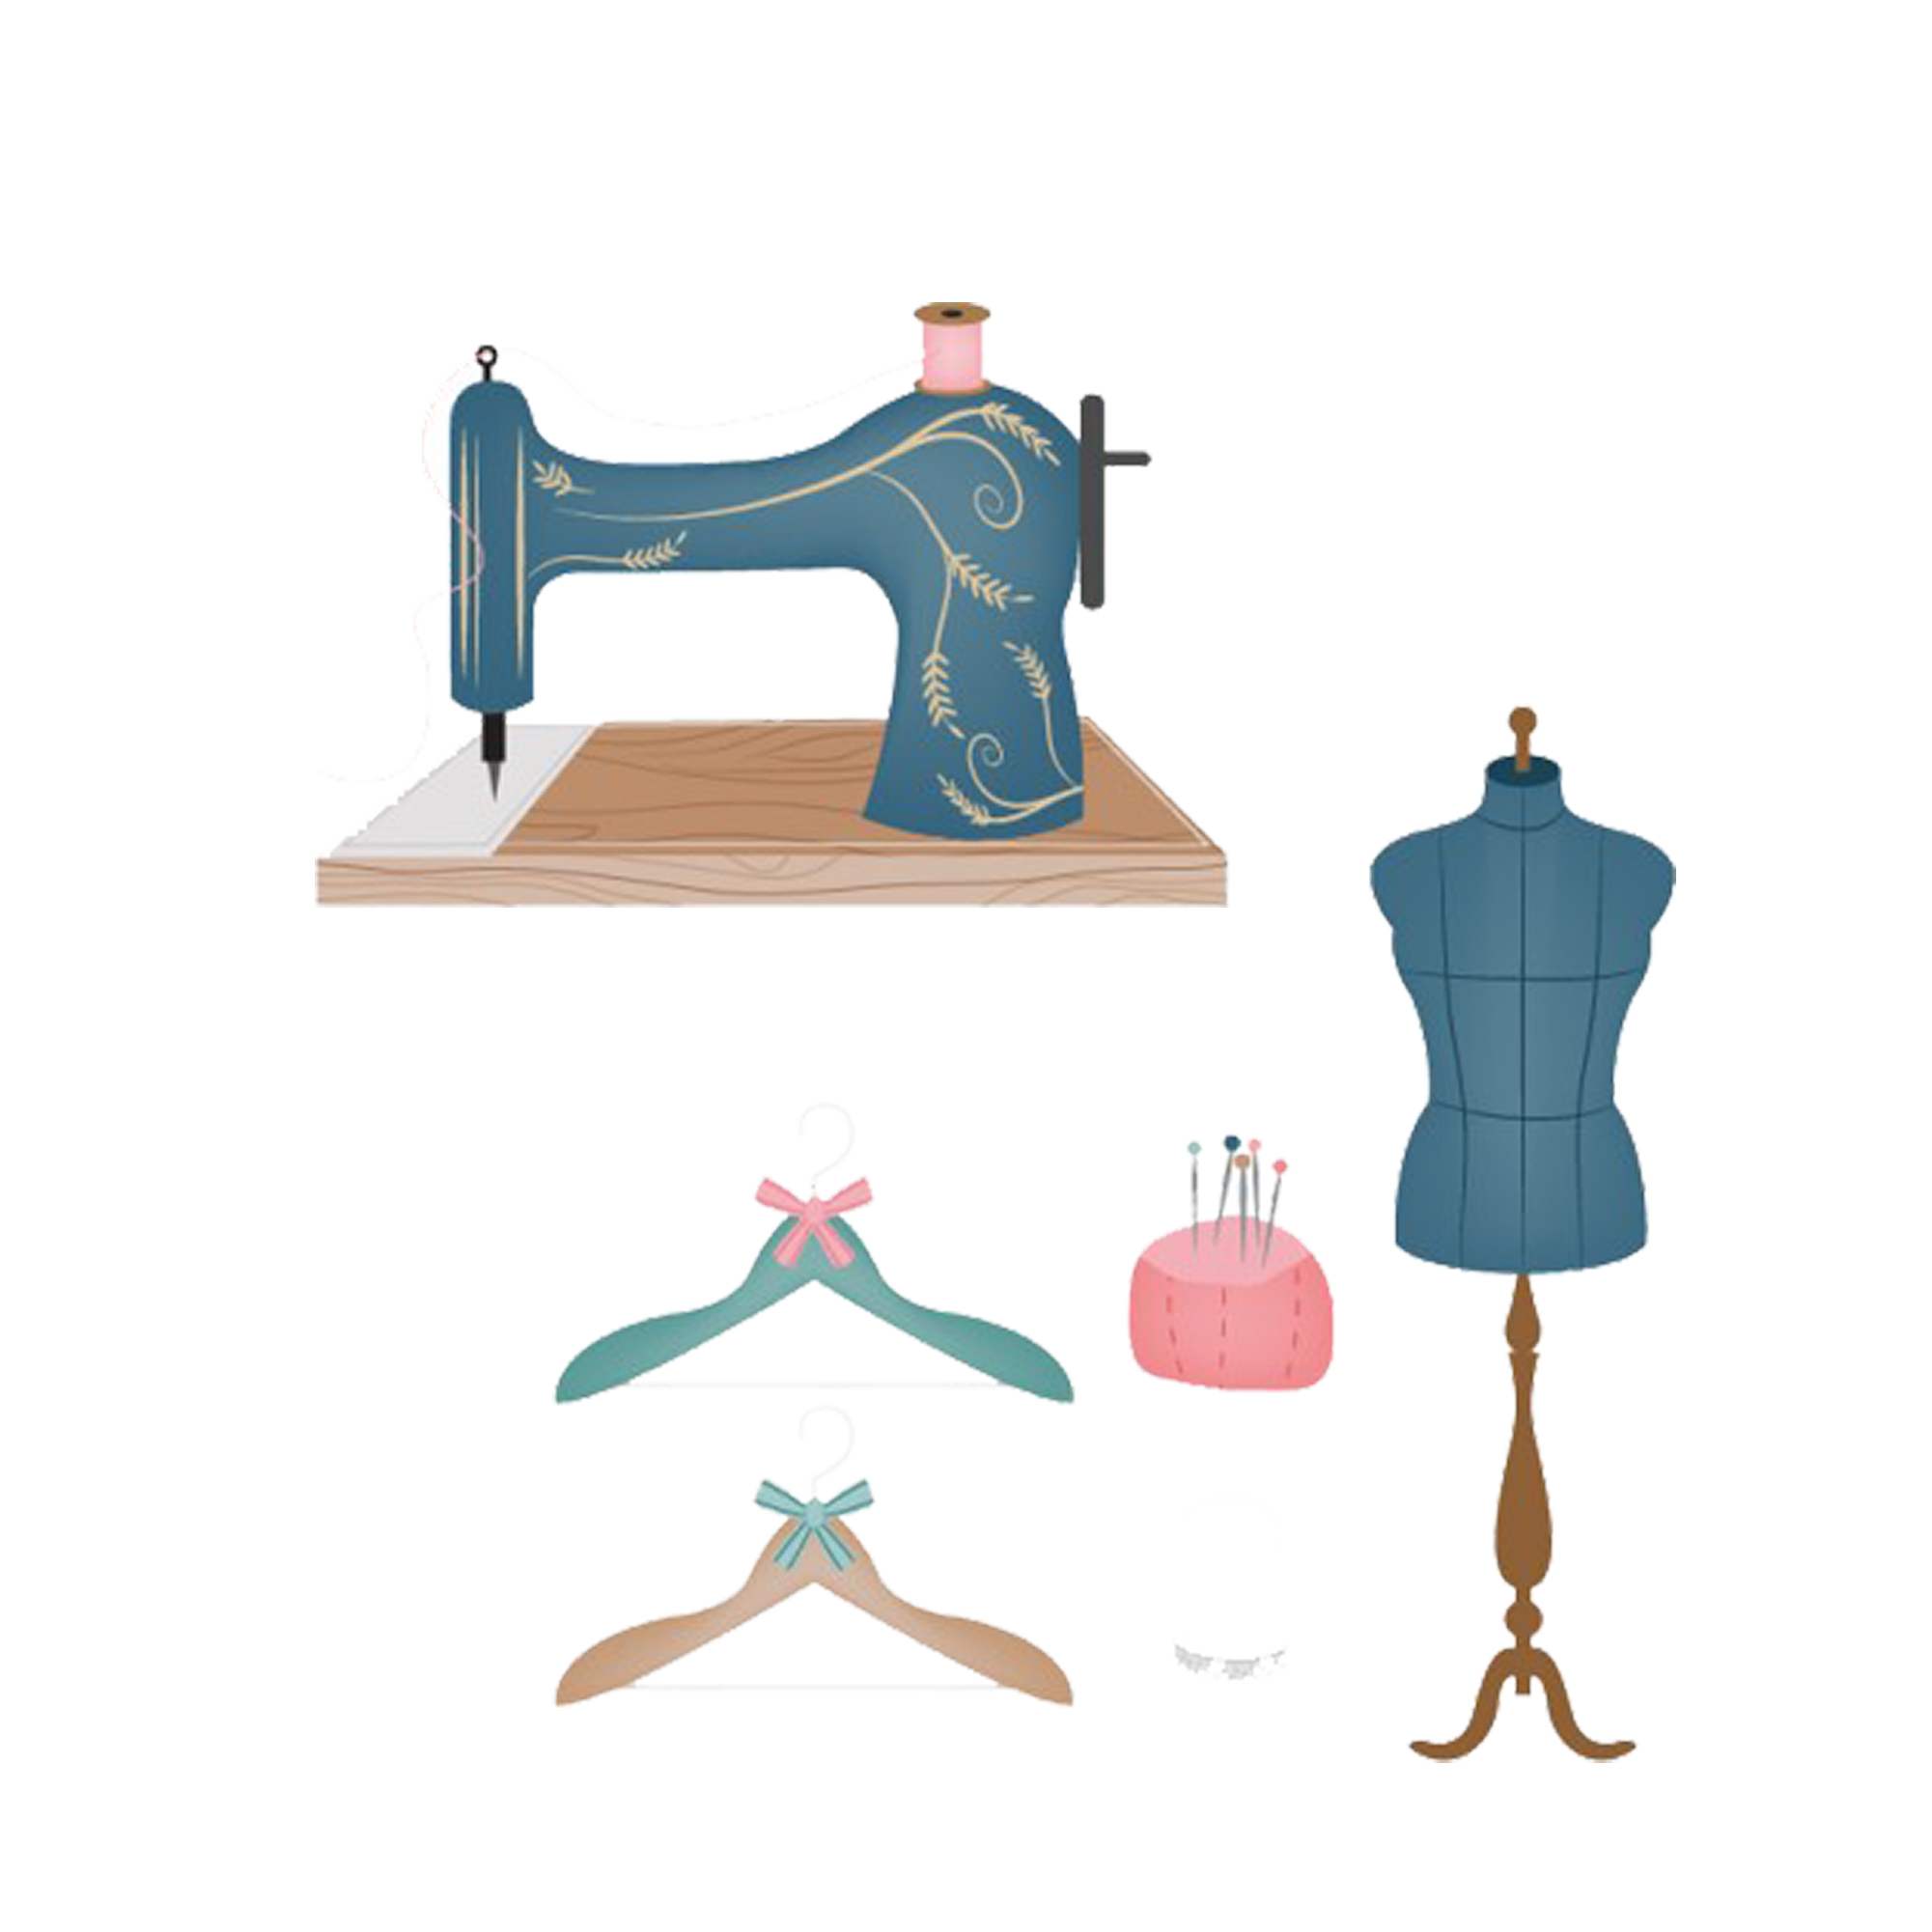 Needle clipart tailor. Sewing drawing machine clip